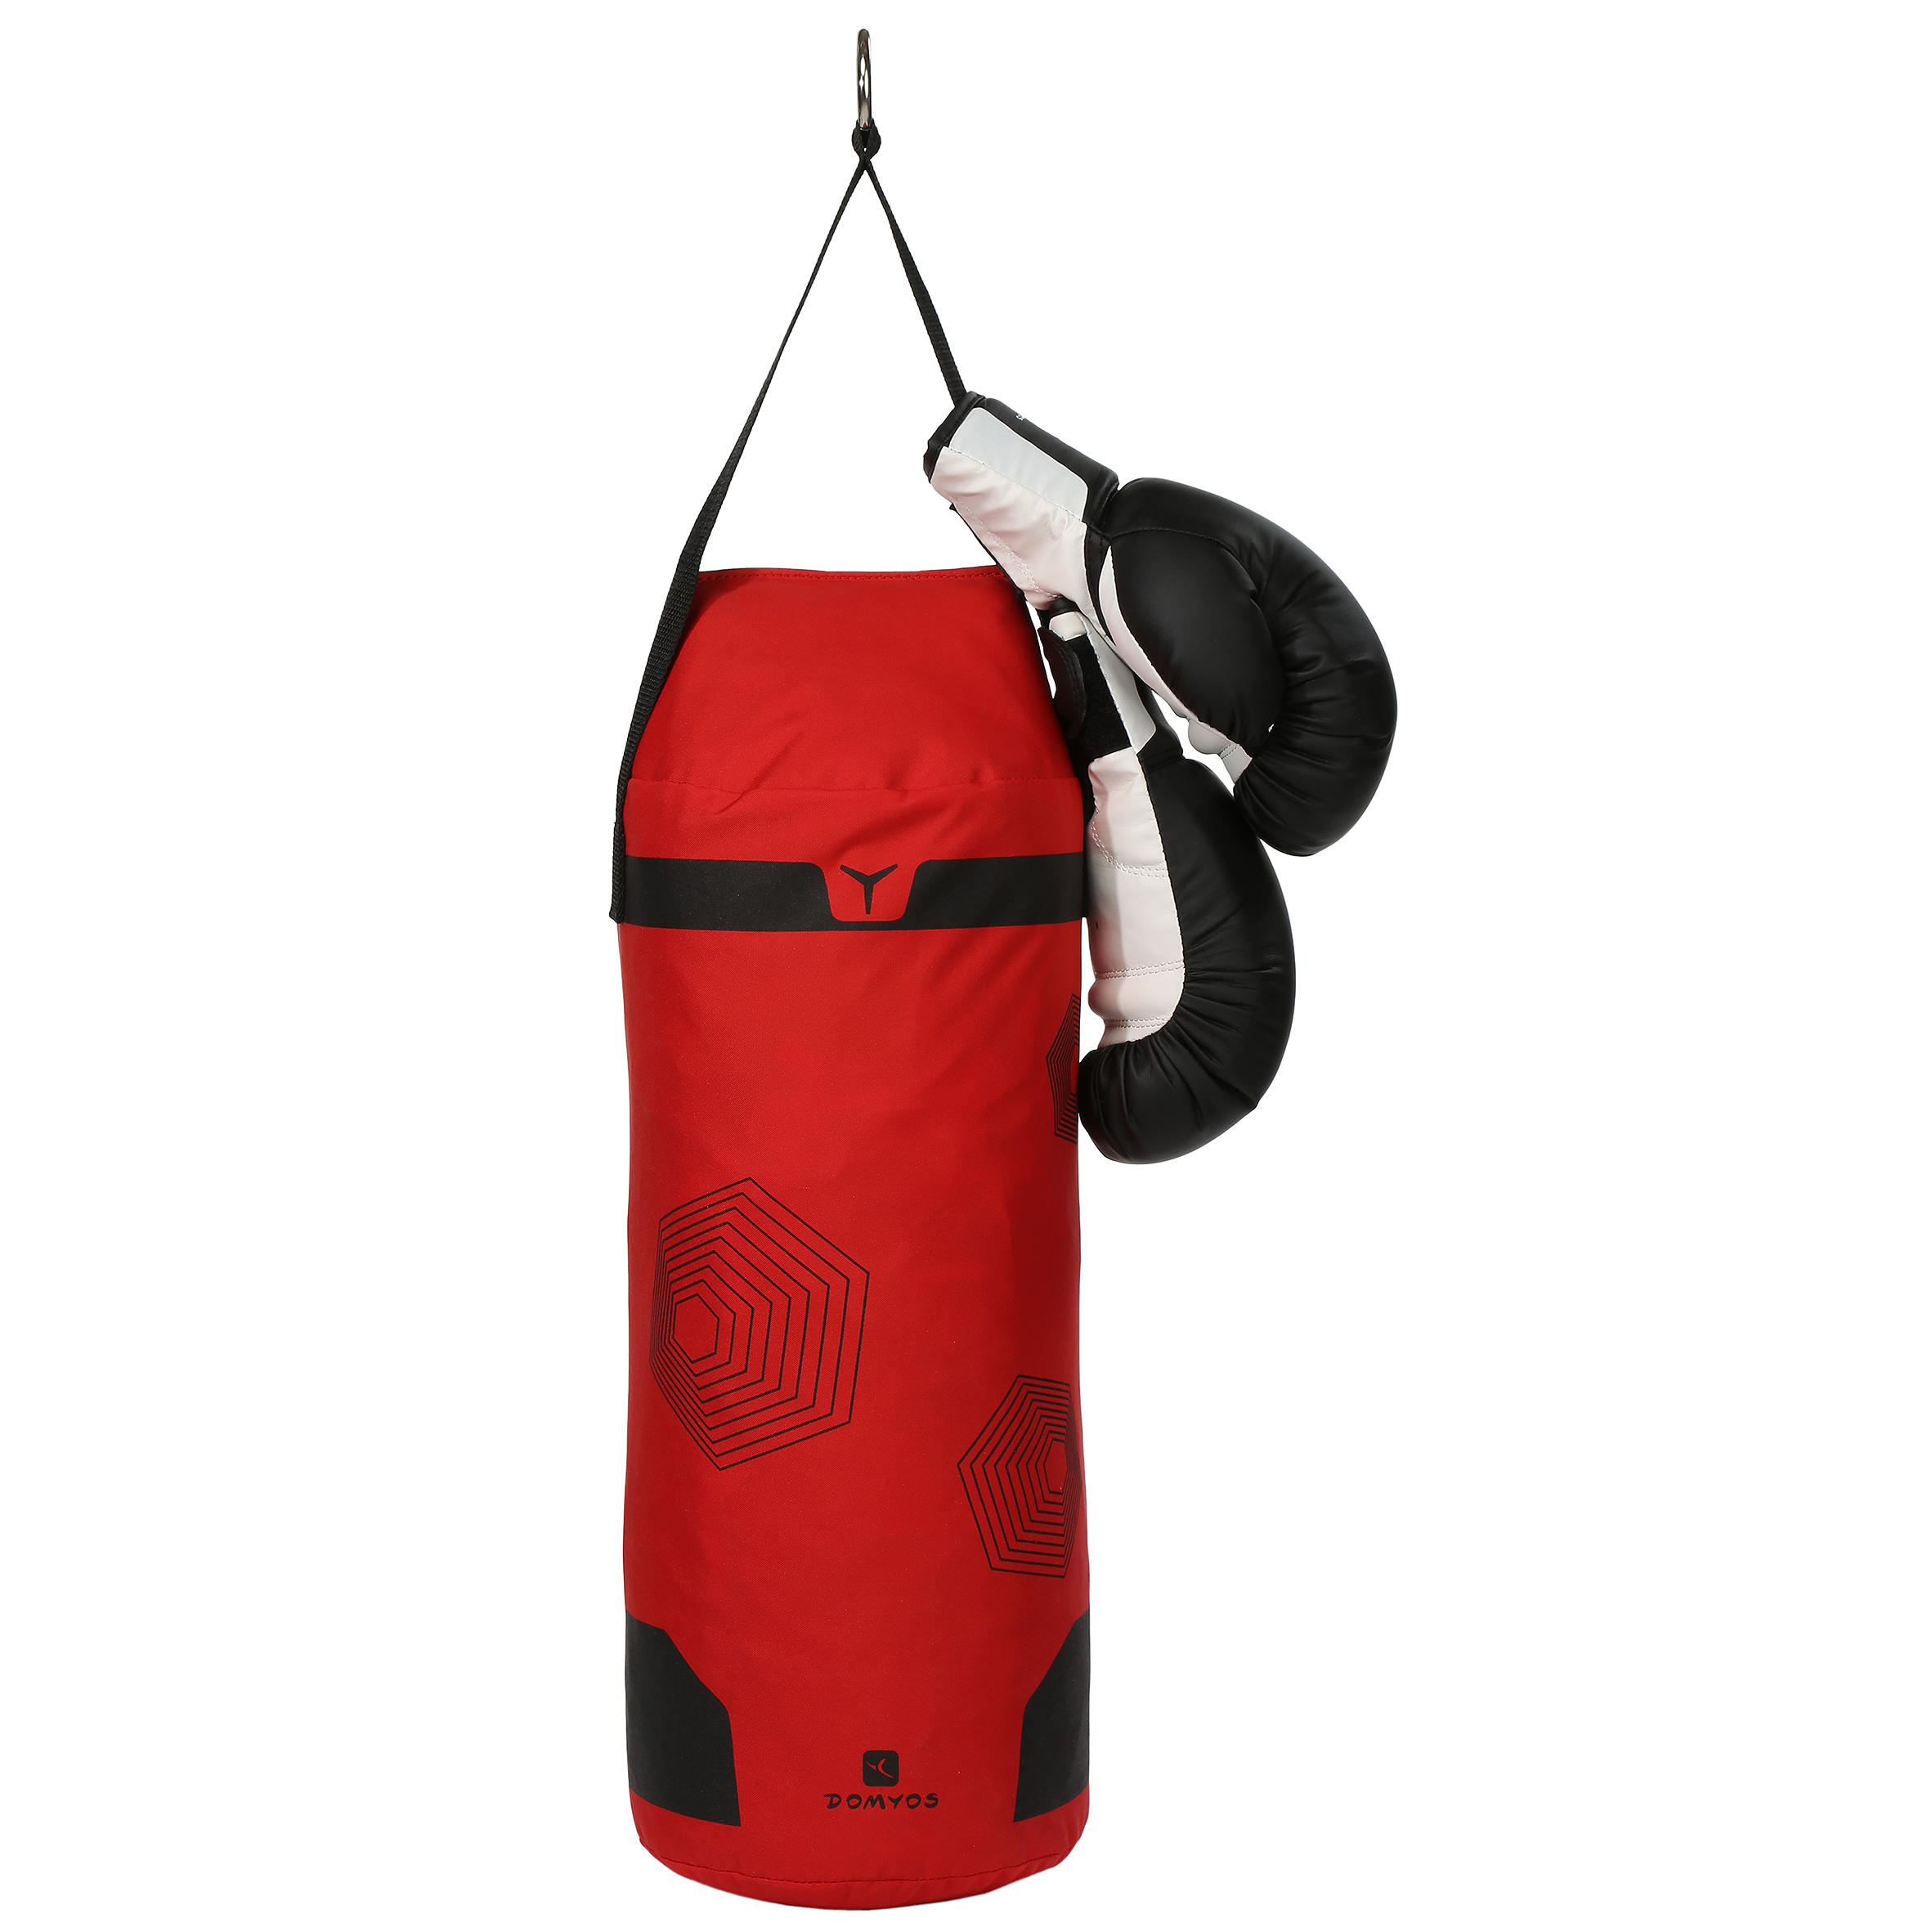 Kids Beginner Boxing Bag Set: Red Bag + Black Gloves